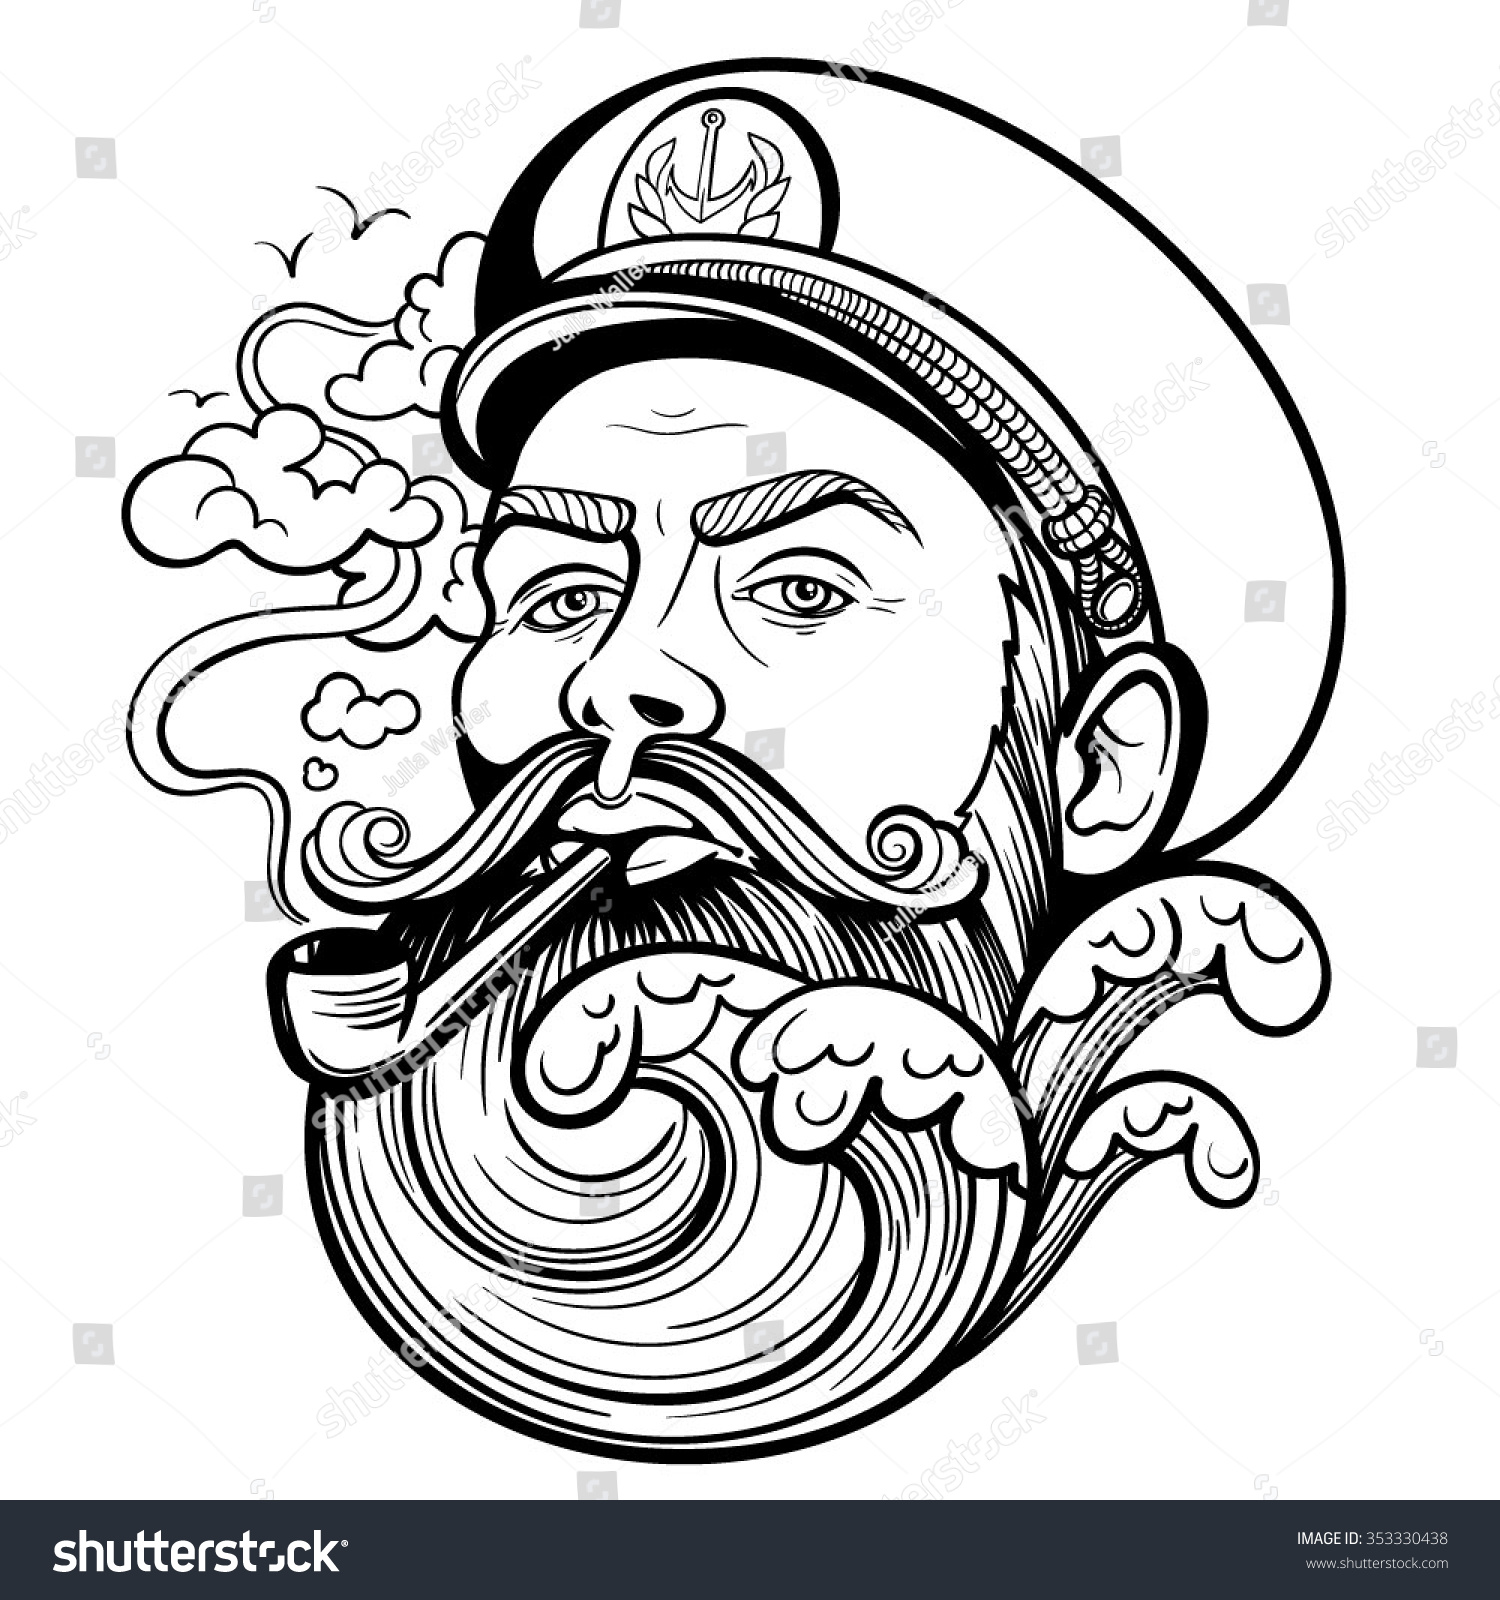 Illustration Tattoos: Vector Tattoo Black White Captain Illustration Stock